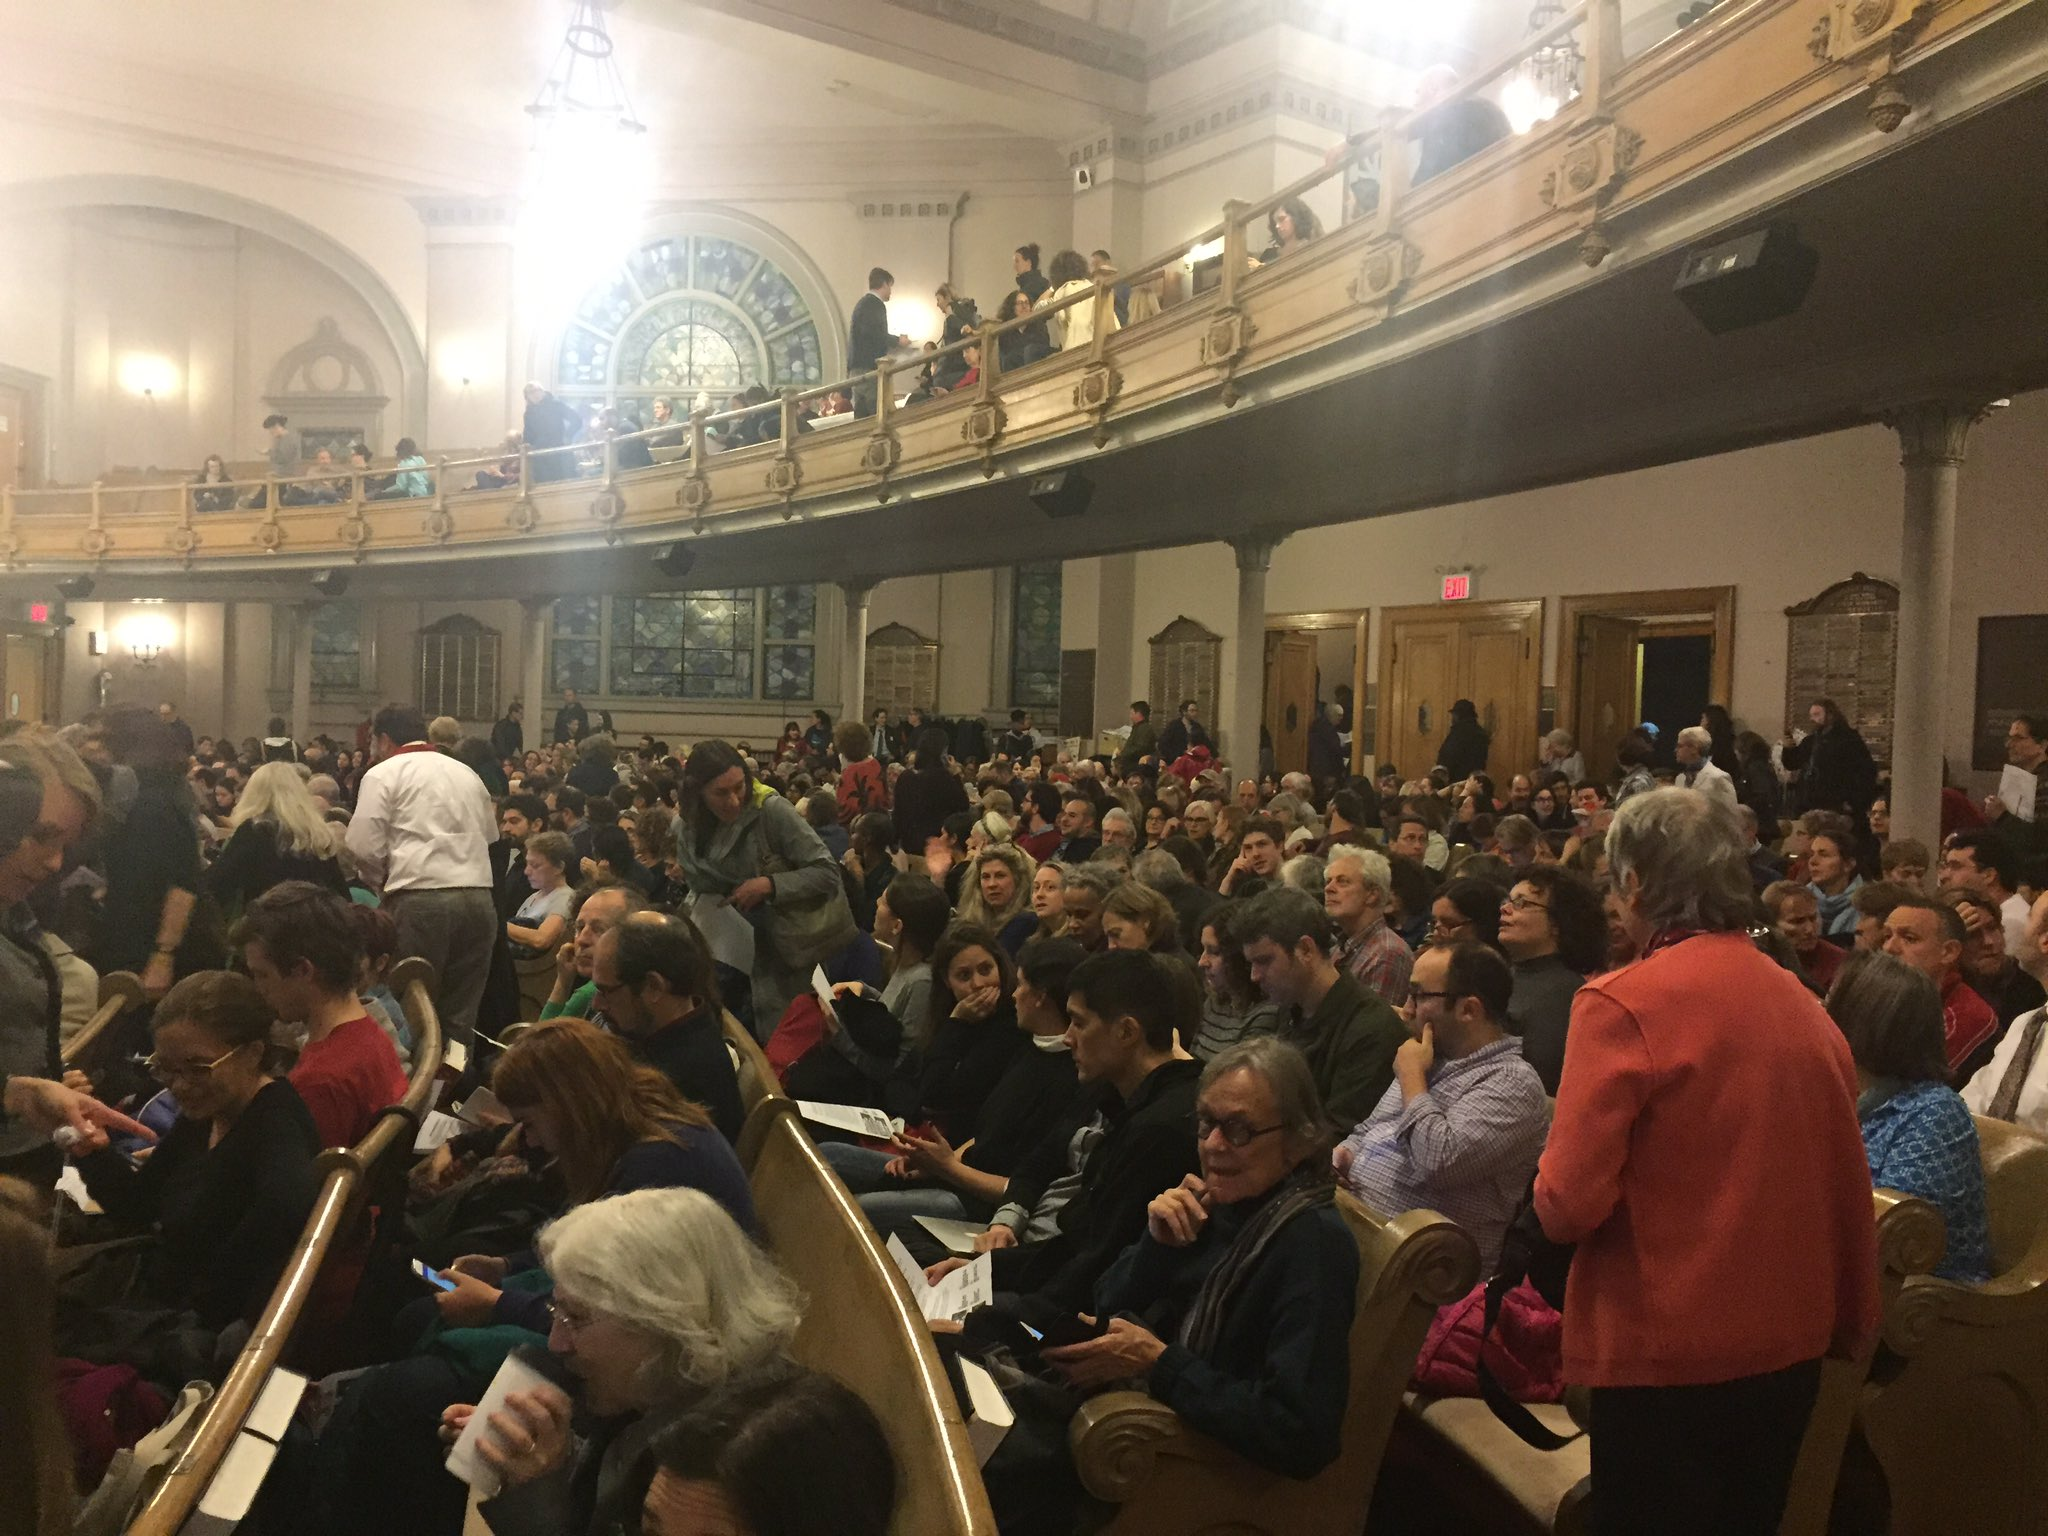 Huge crowd for #GetOrganizedBK. We're suiting up to #ResistTrump and defend core American values together. https://t.co/vpJ2bDhWR5